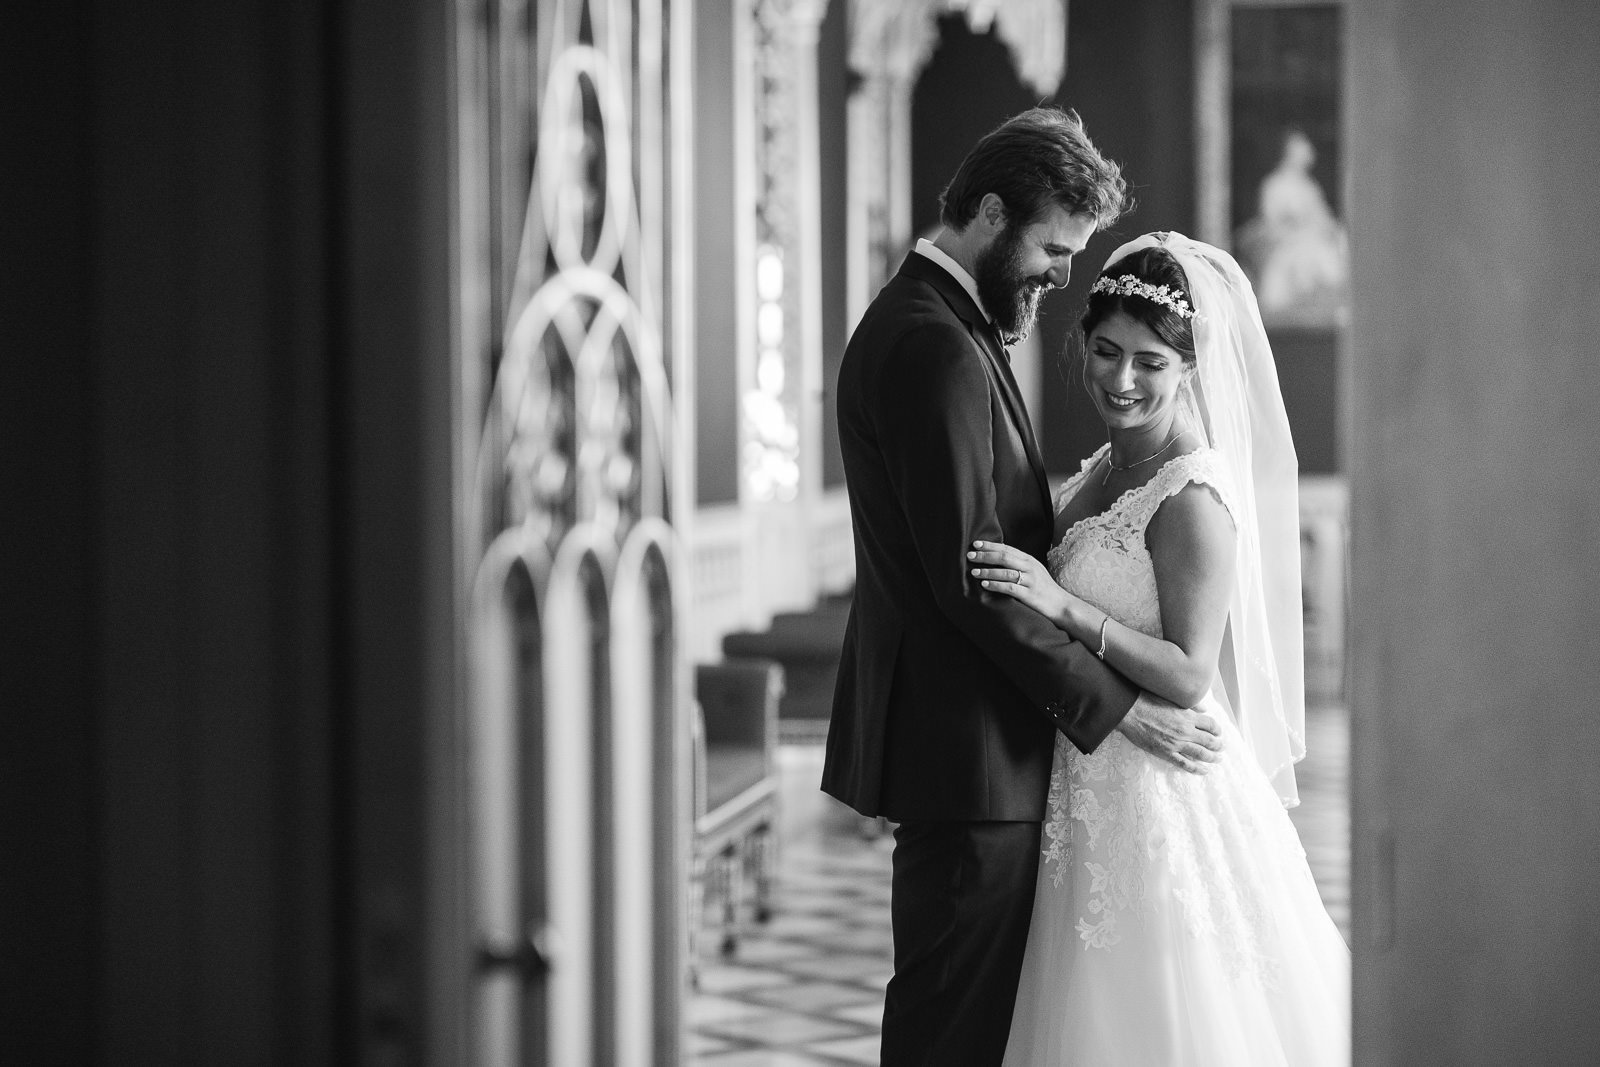 Strawberry Hill House Wedding Photography - Christelle and Nick 26